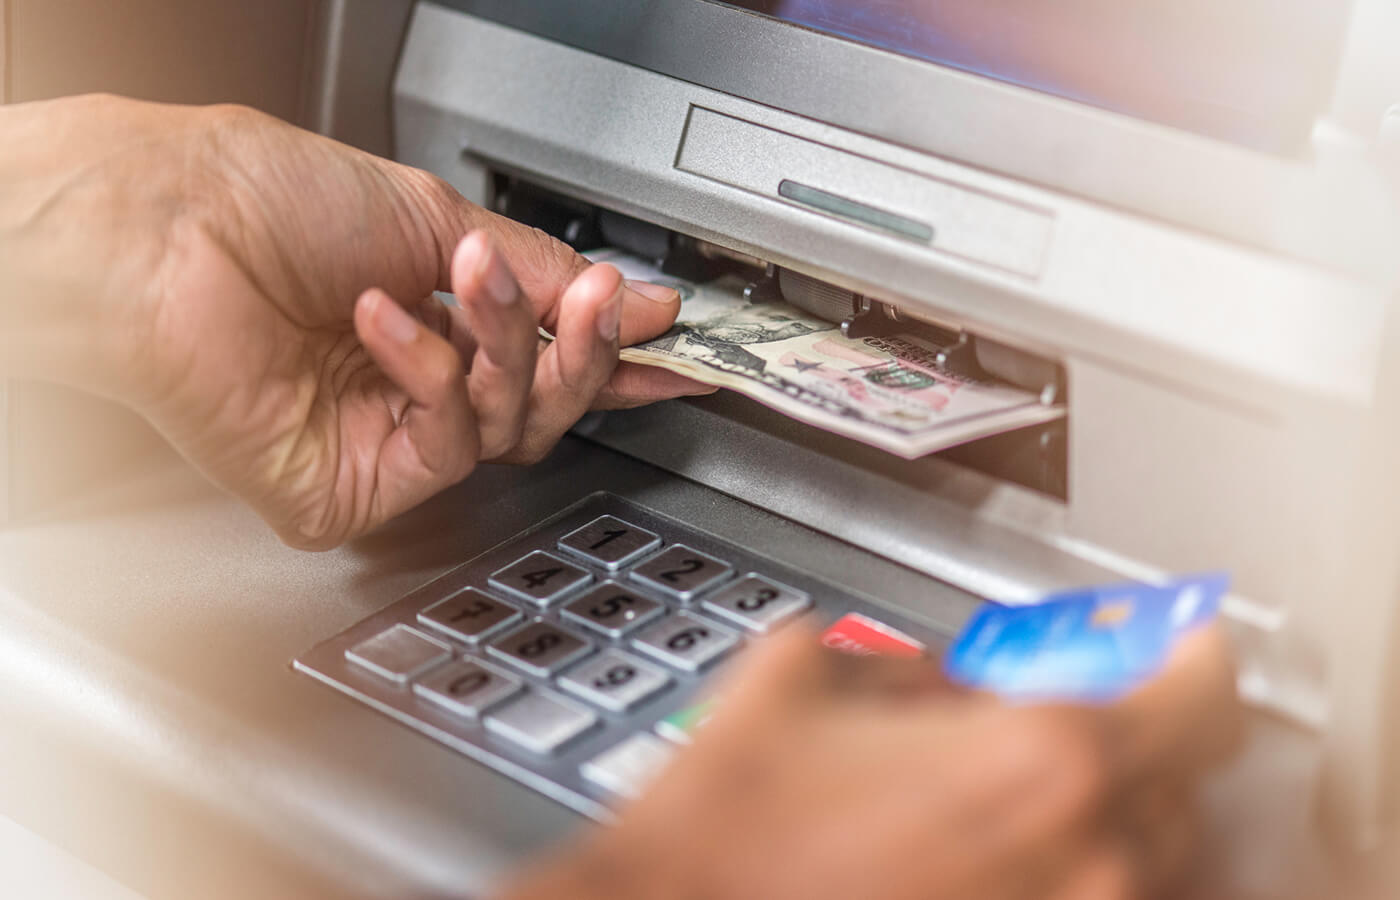 How Do I Get Cash From My Credit Card? - Experian